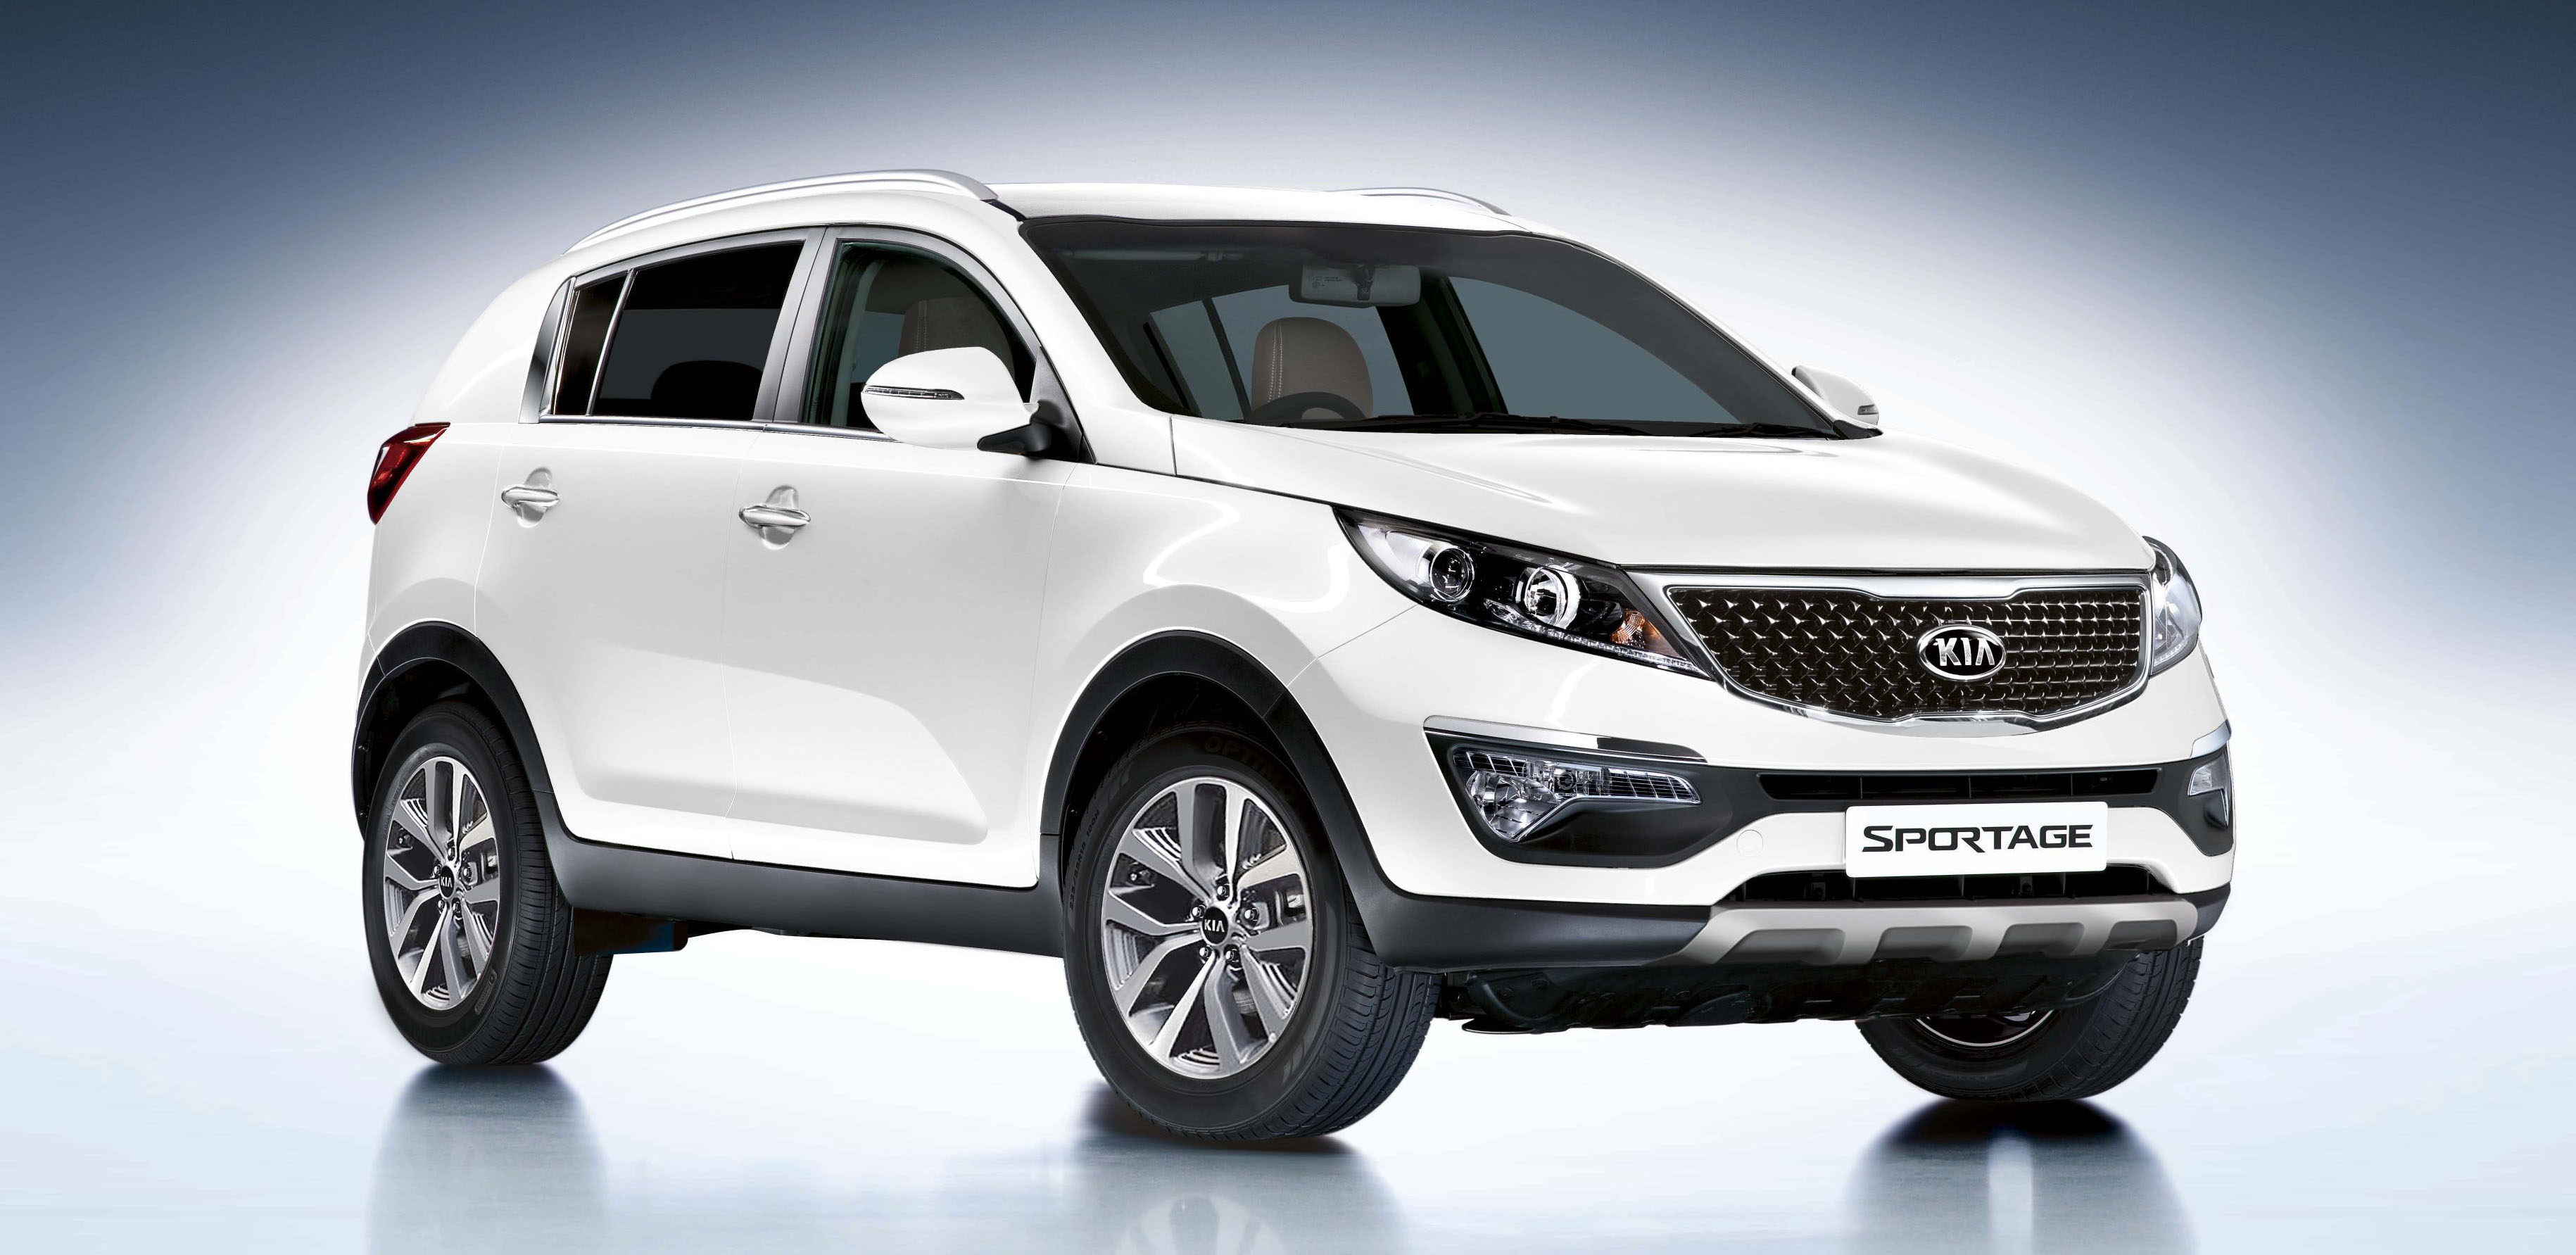 kia sportage announced as fastest selling used car in 2017 the leader newspaper. Black Bedroom Furniture Sets. Home Design Ideas